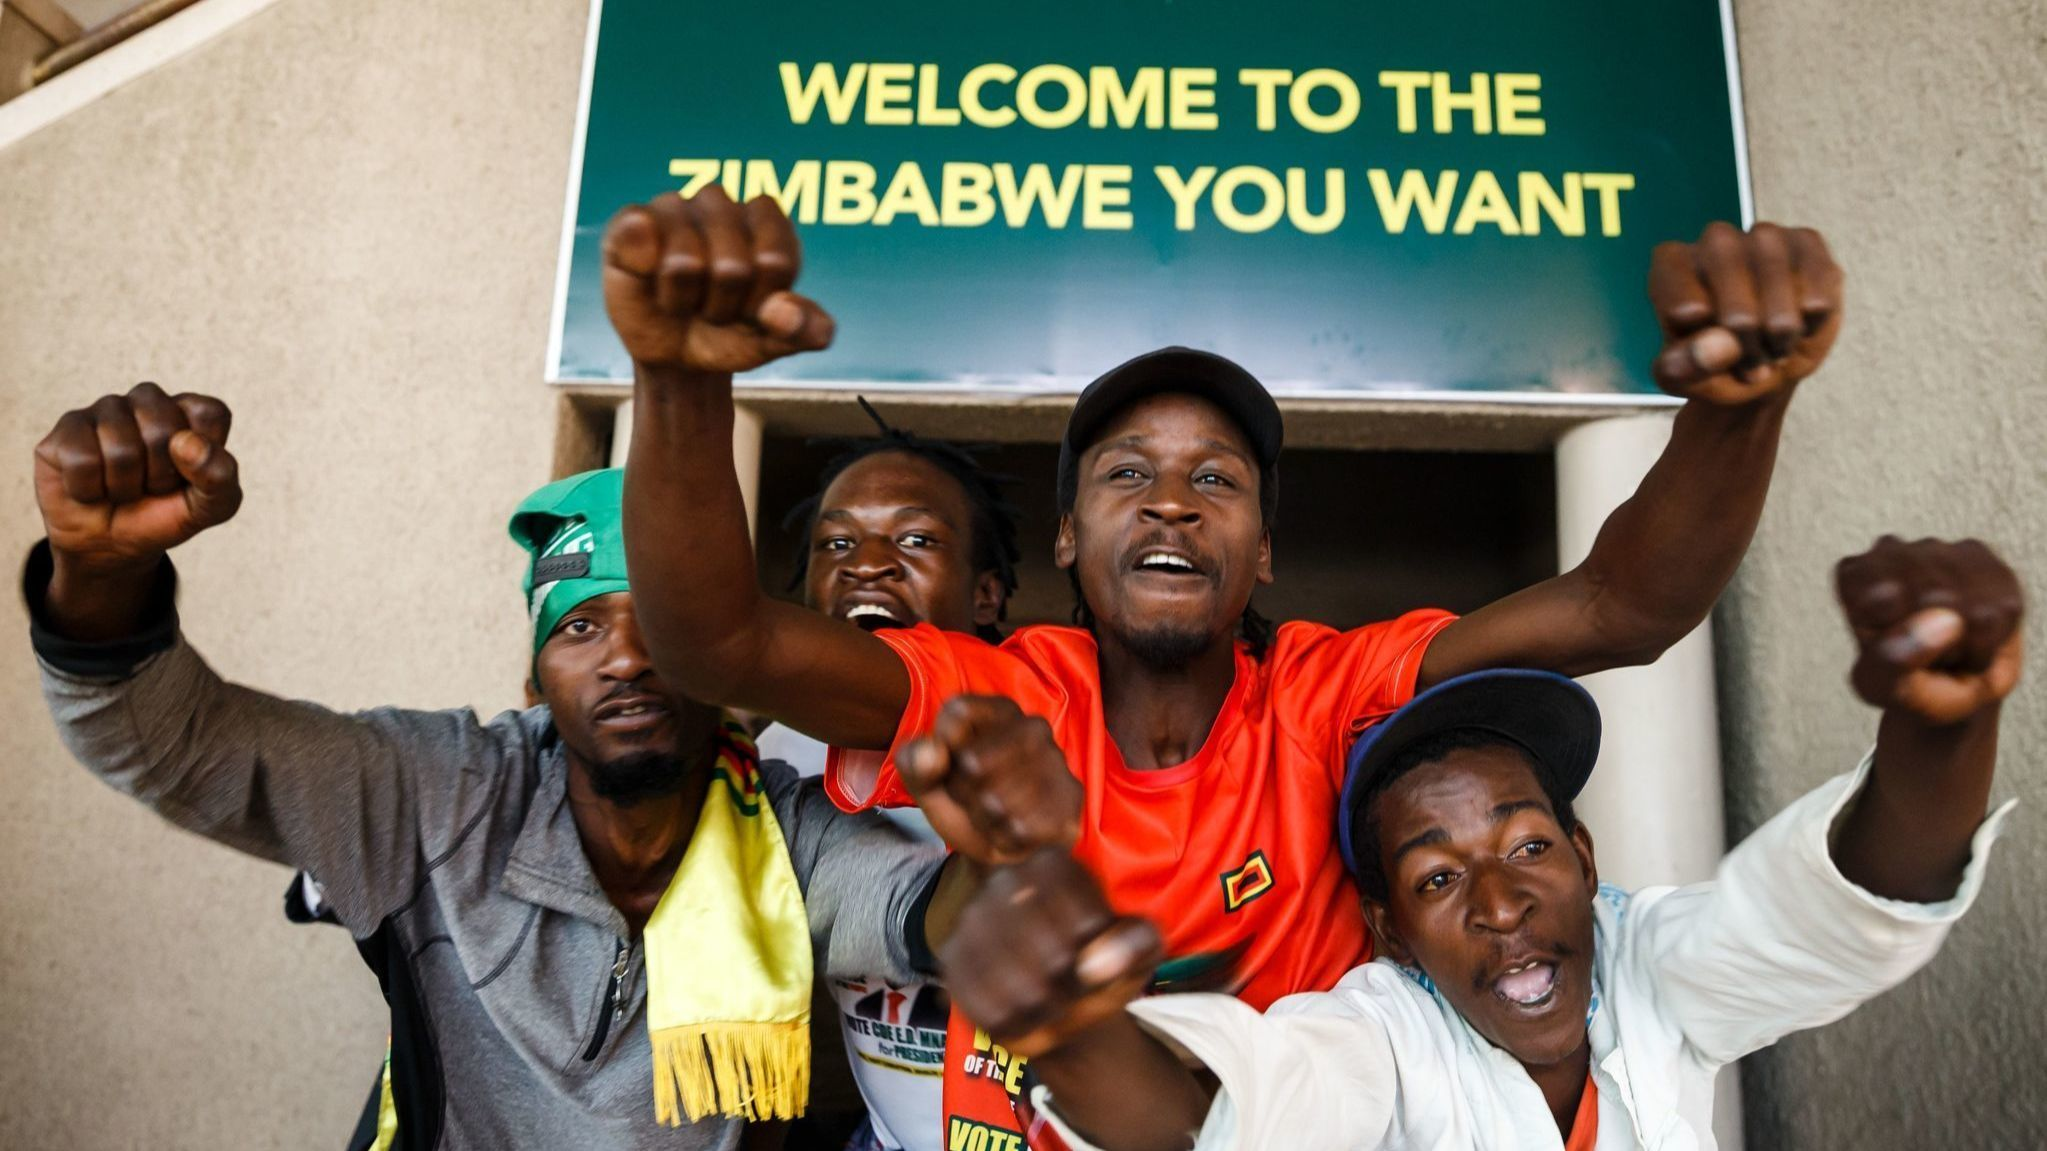 'It is time to move forward together': Zimbabwe court unanimously upholds president's election win